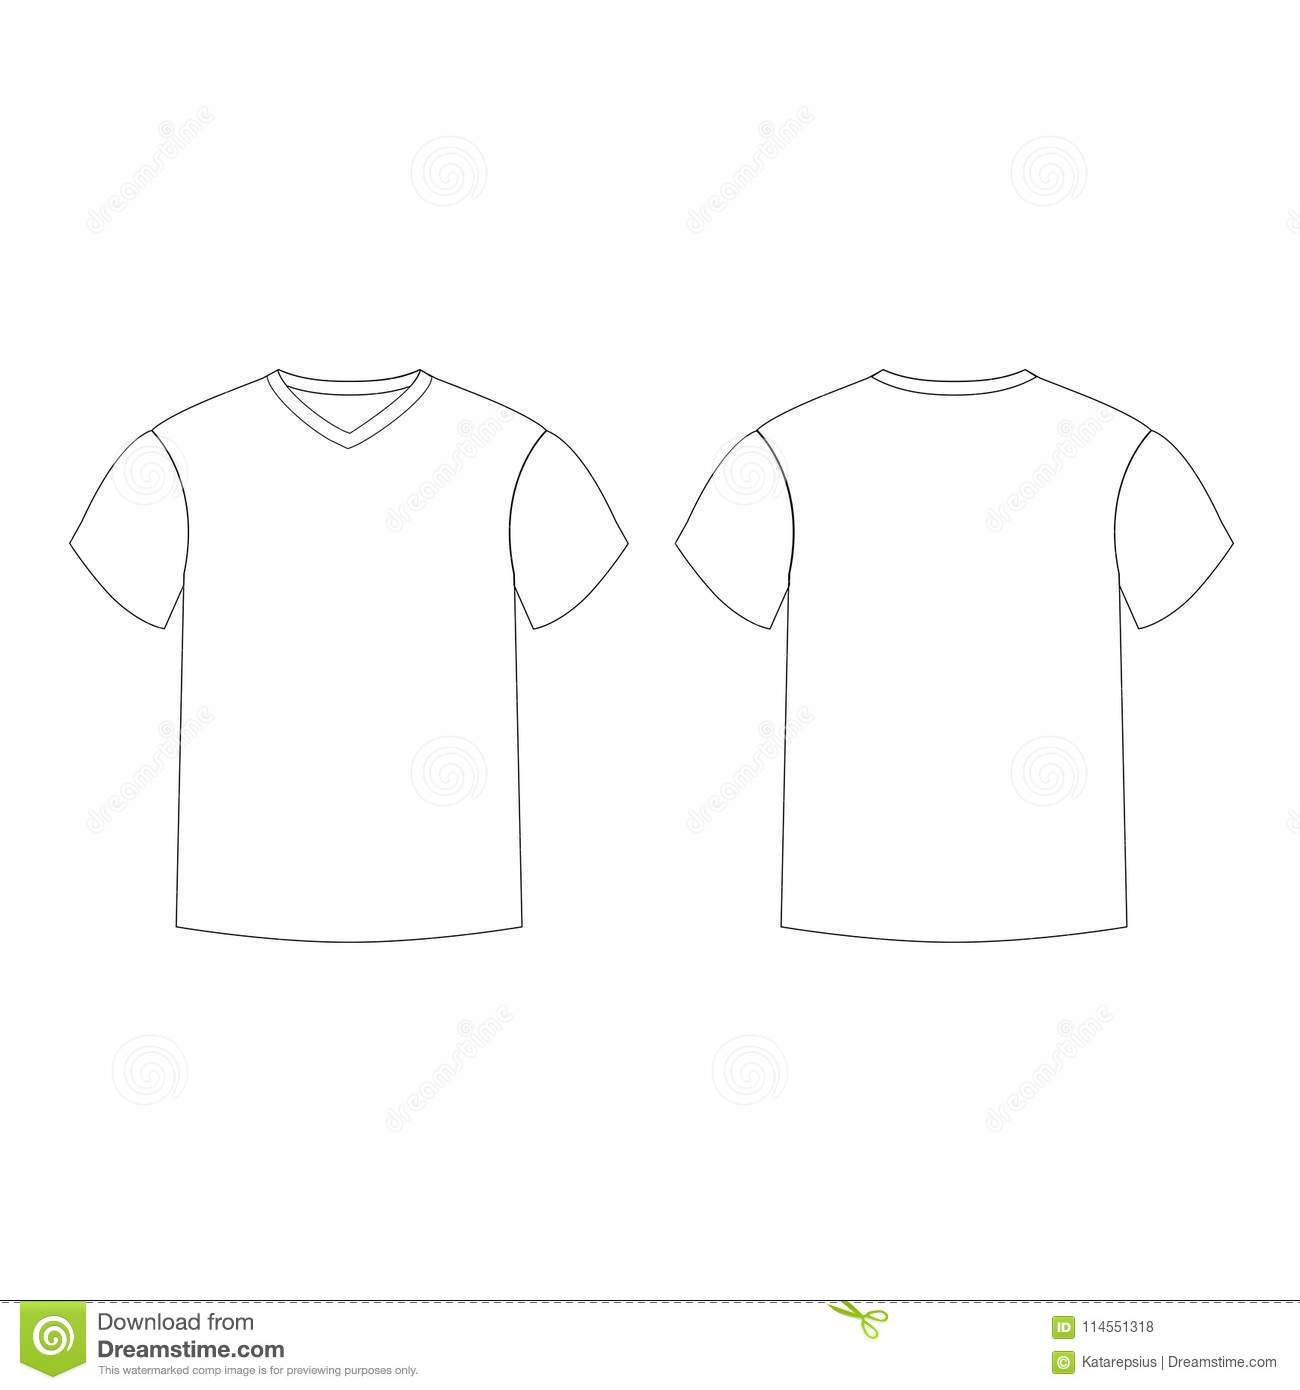 2d845d70f70b Outline countur silhouette of men`s t-shirt template v-neck front and back  side views. Vector of male t-shirt wearing illustration isolated on white  ...